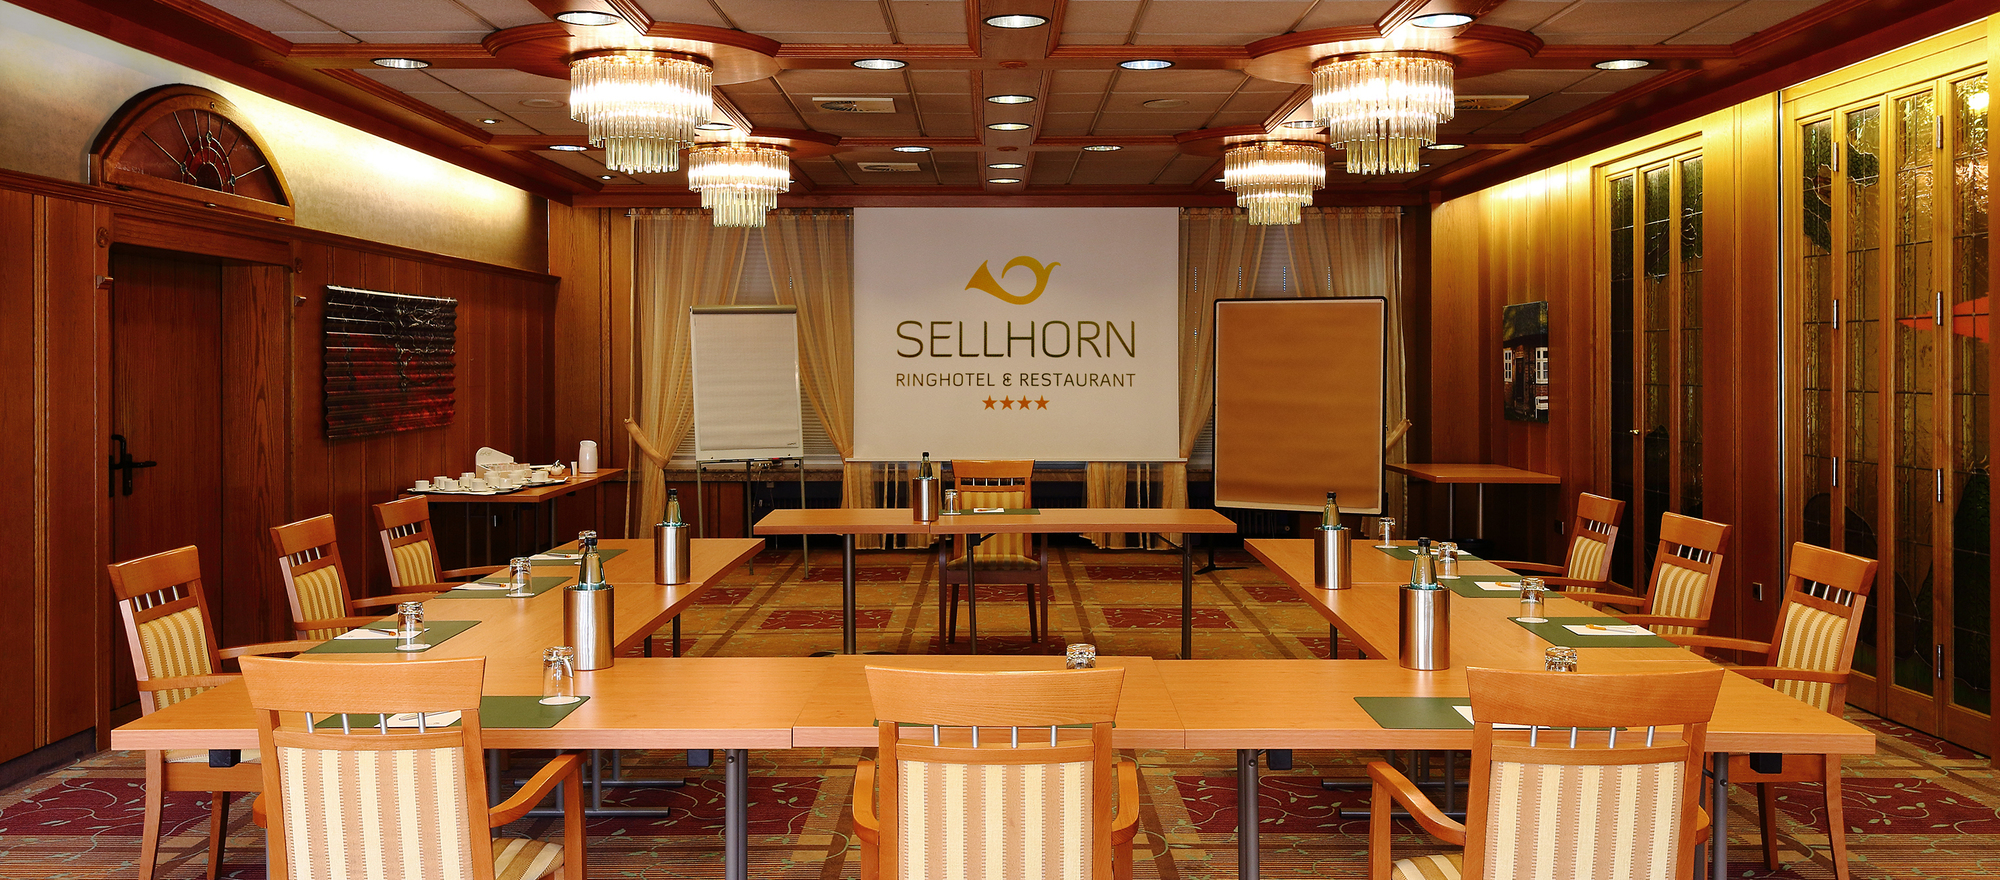 Conferences and meetings in the Lueneburg Heath at the 4-star hotel Ringhotel Sellhorn in Hanstedt